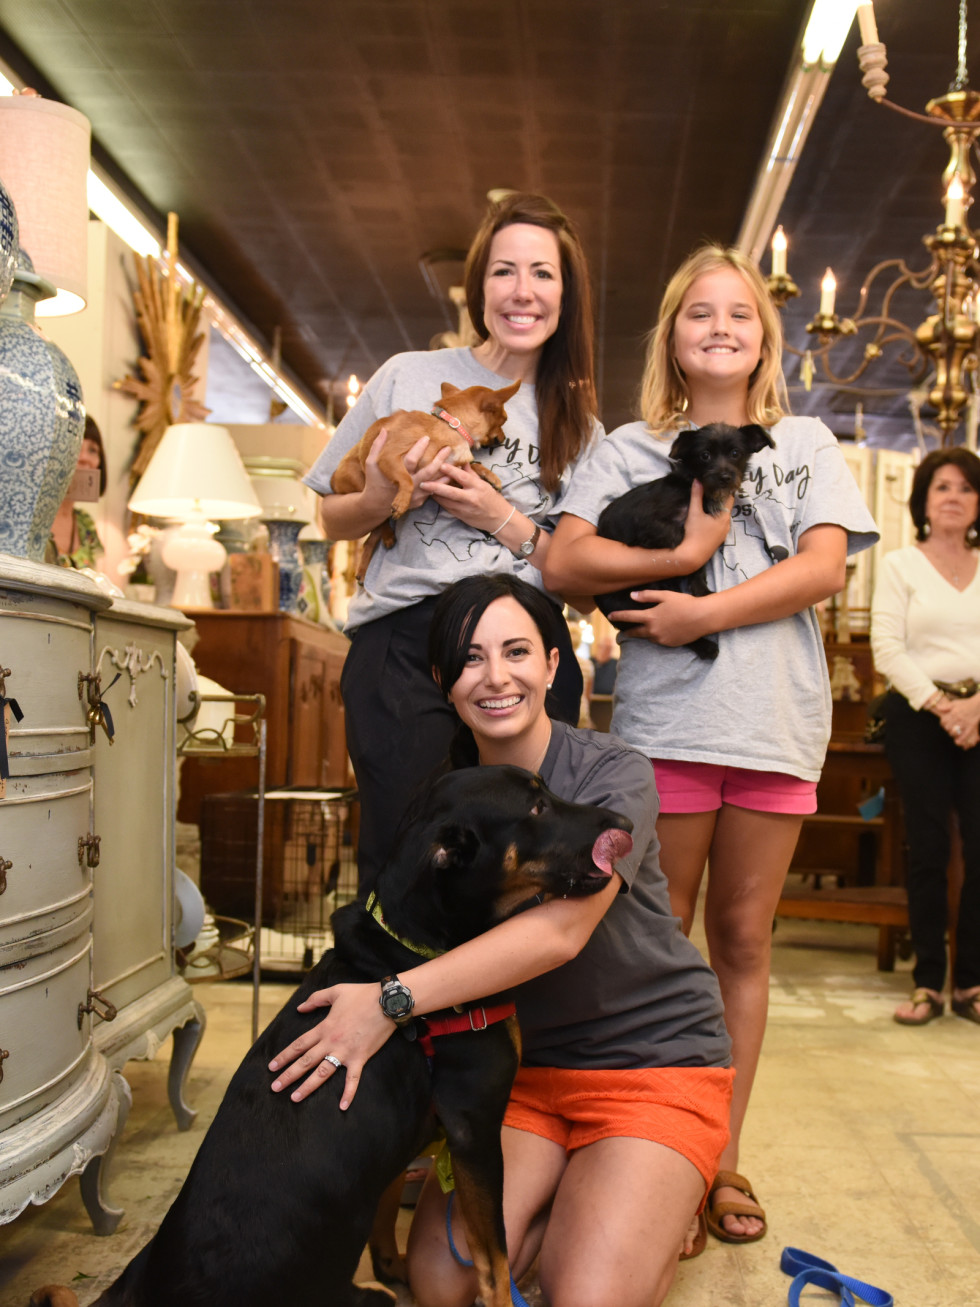 News, Shelby, Barks & Bubbles, Memorial Antiques, July 2015, Larissa Gavin, Julie Dodson,Emme Day